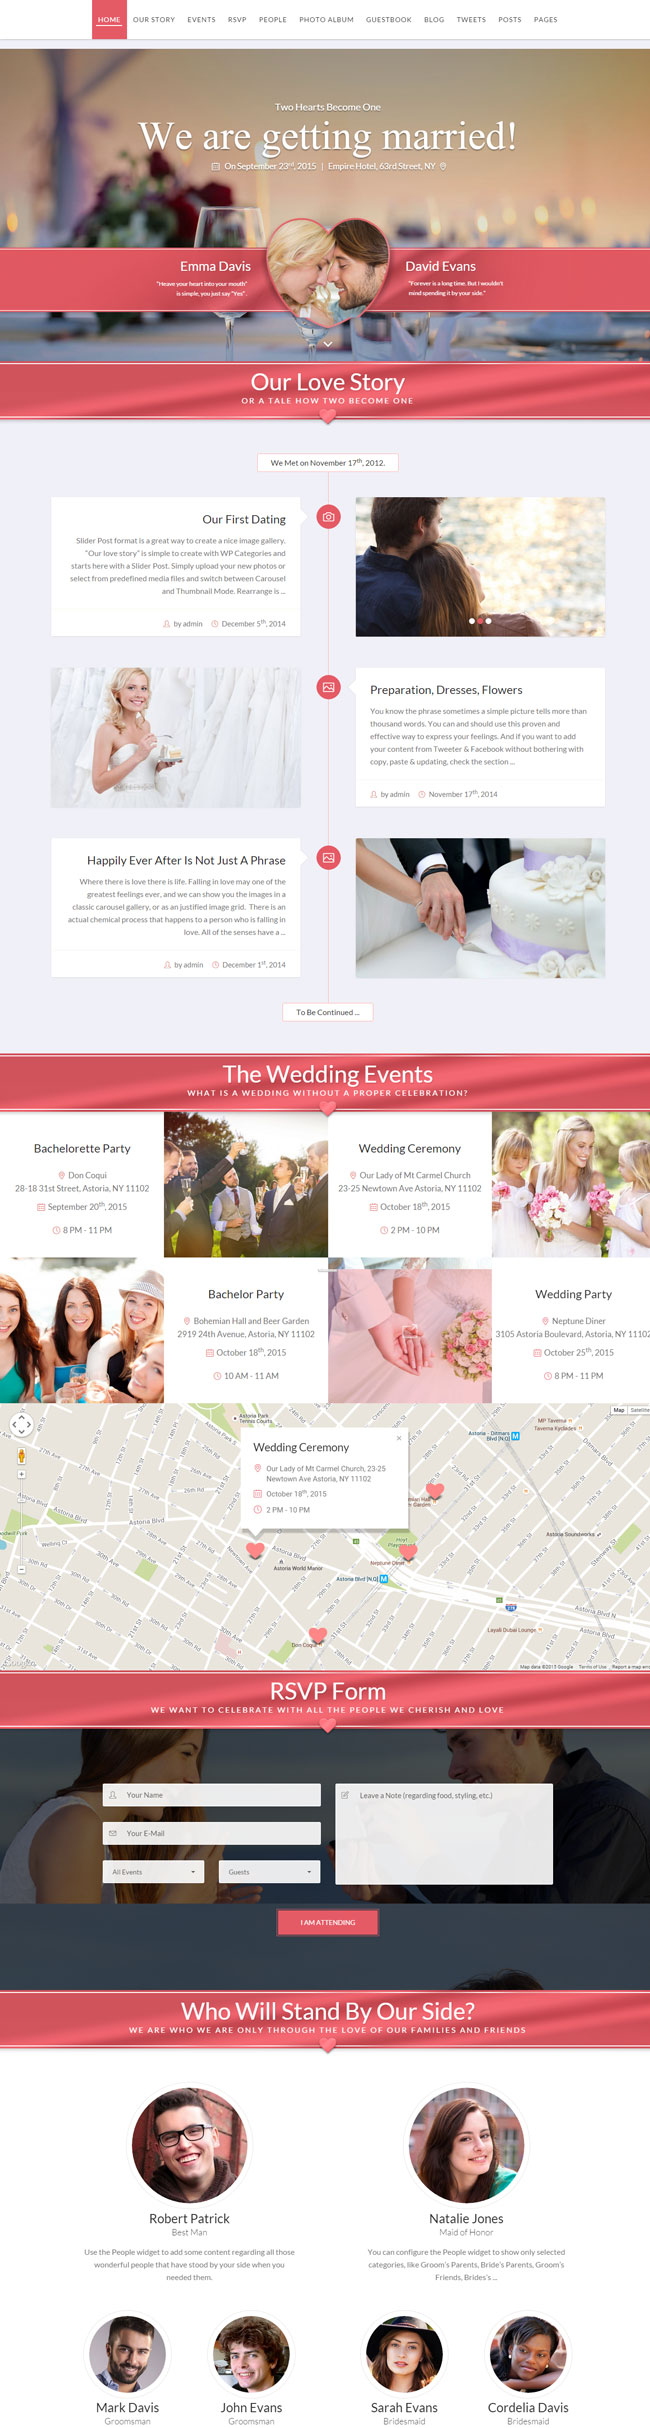 SayYes-WordPress-Wedding-Theme